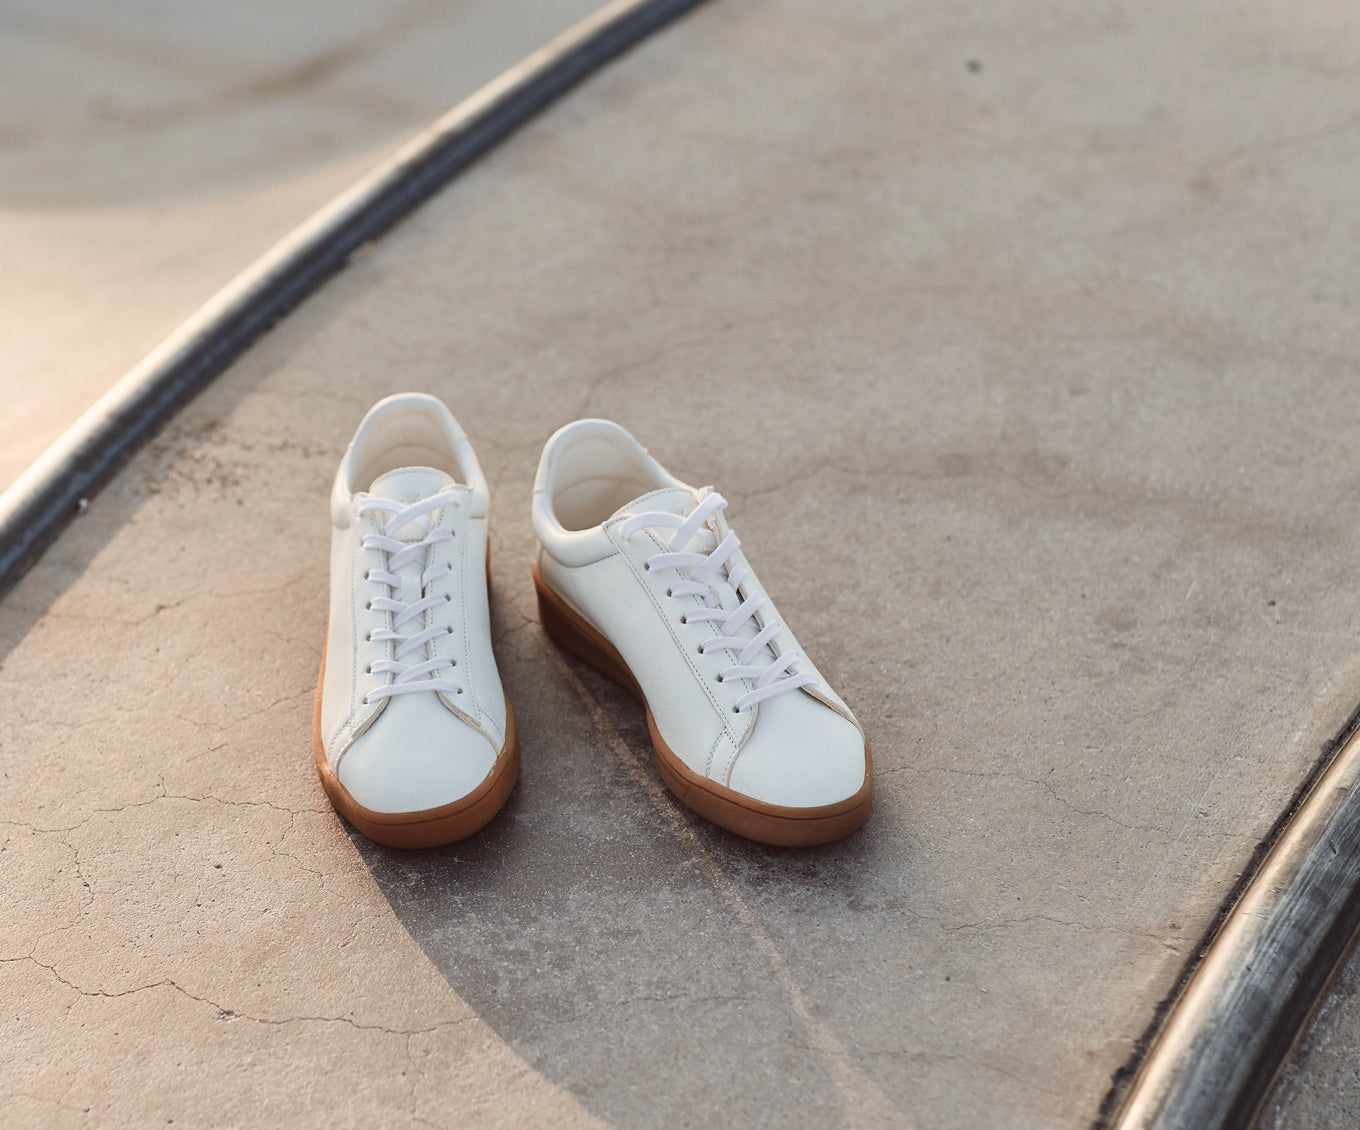 1970 compostable sustainable sneakers natural gum sole in white WAES plastic-free sneakers shoot 2020